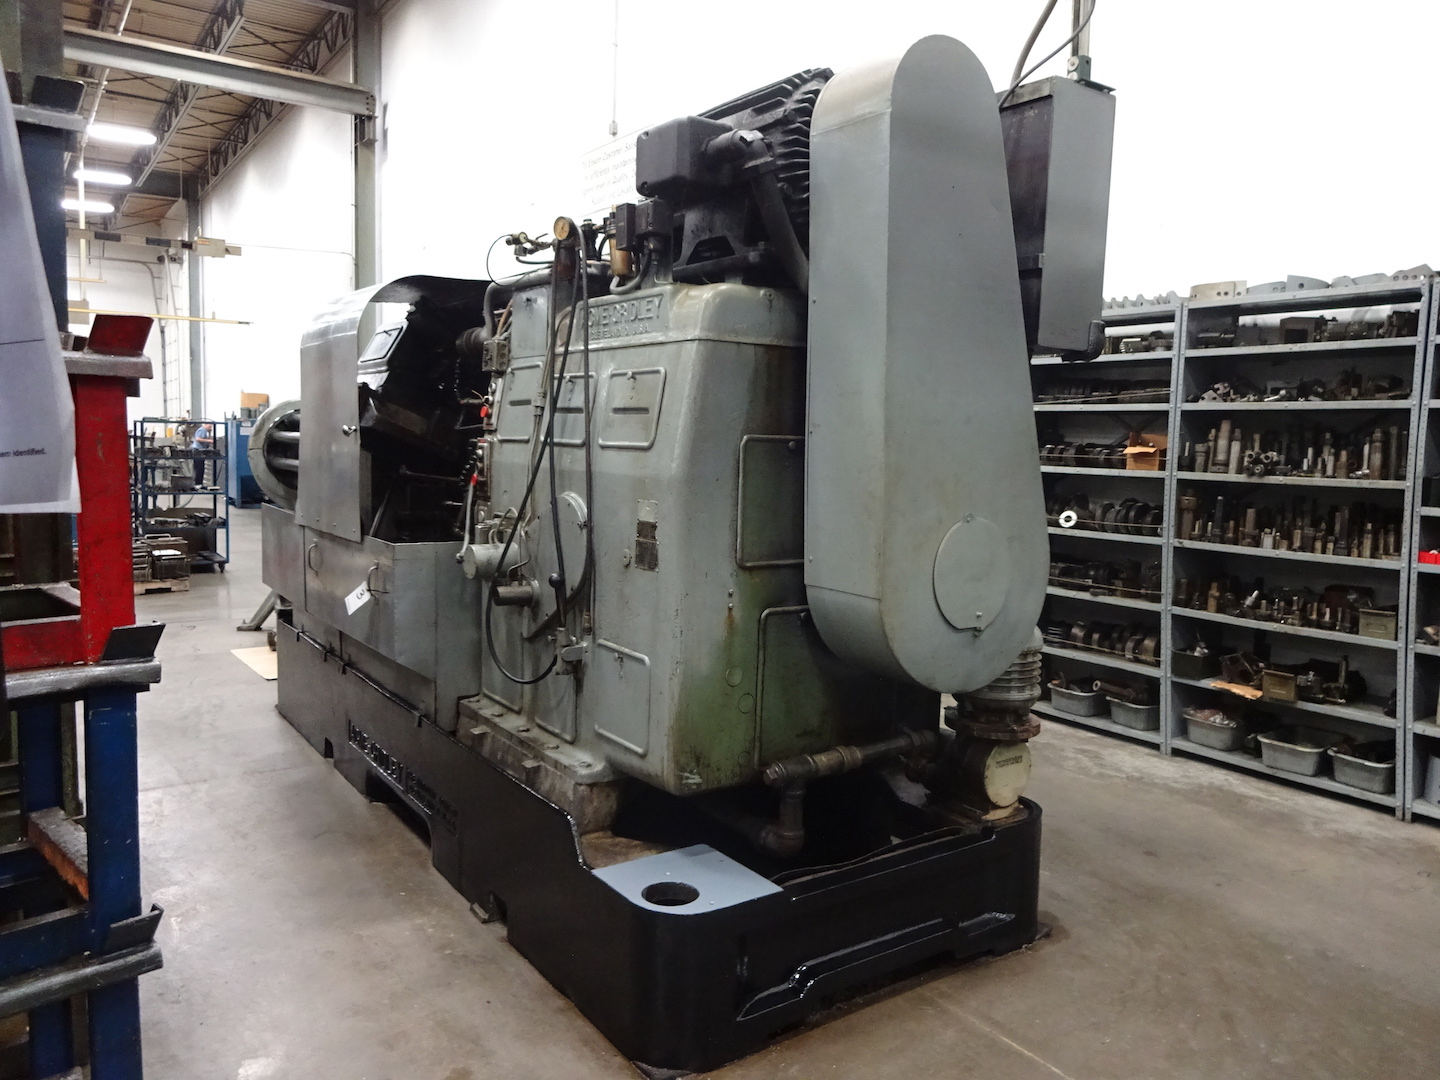 "Lot 3 - ACME-GRIDLEY 2-5/8"" MODEL RB-8 8-SPINDLE AUTOMATIC SCREW MACHINE"